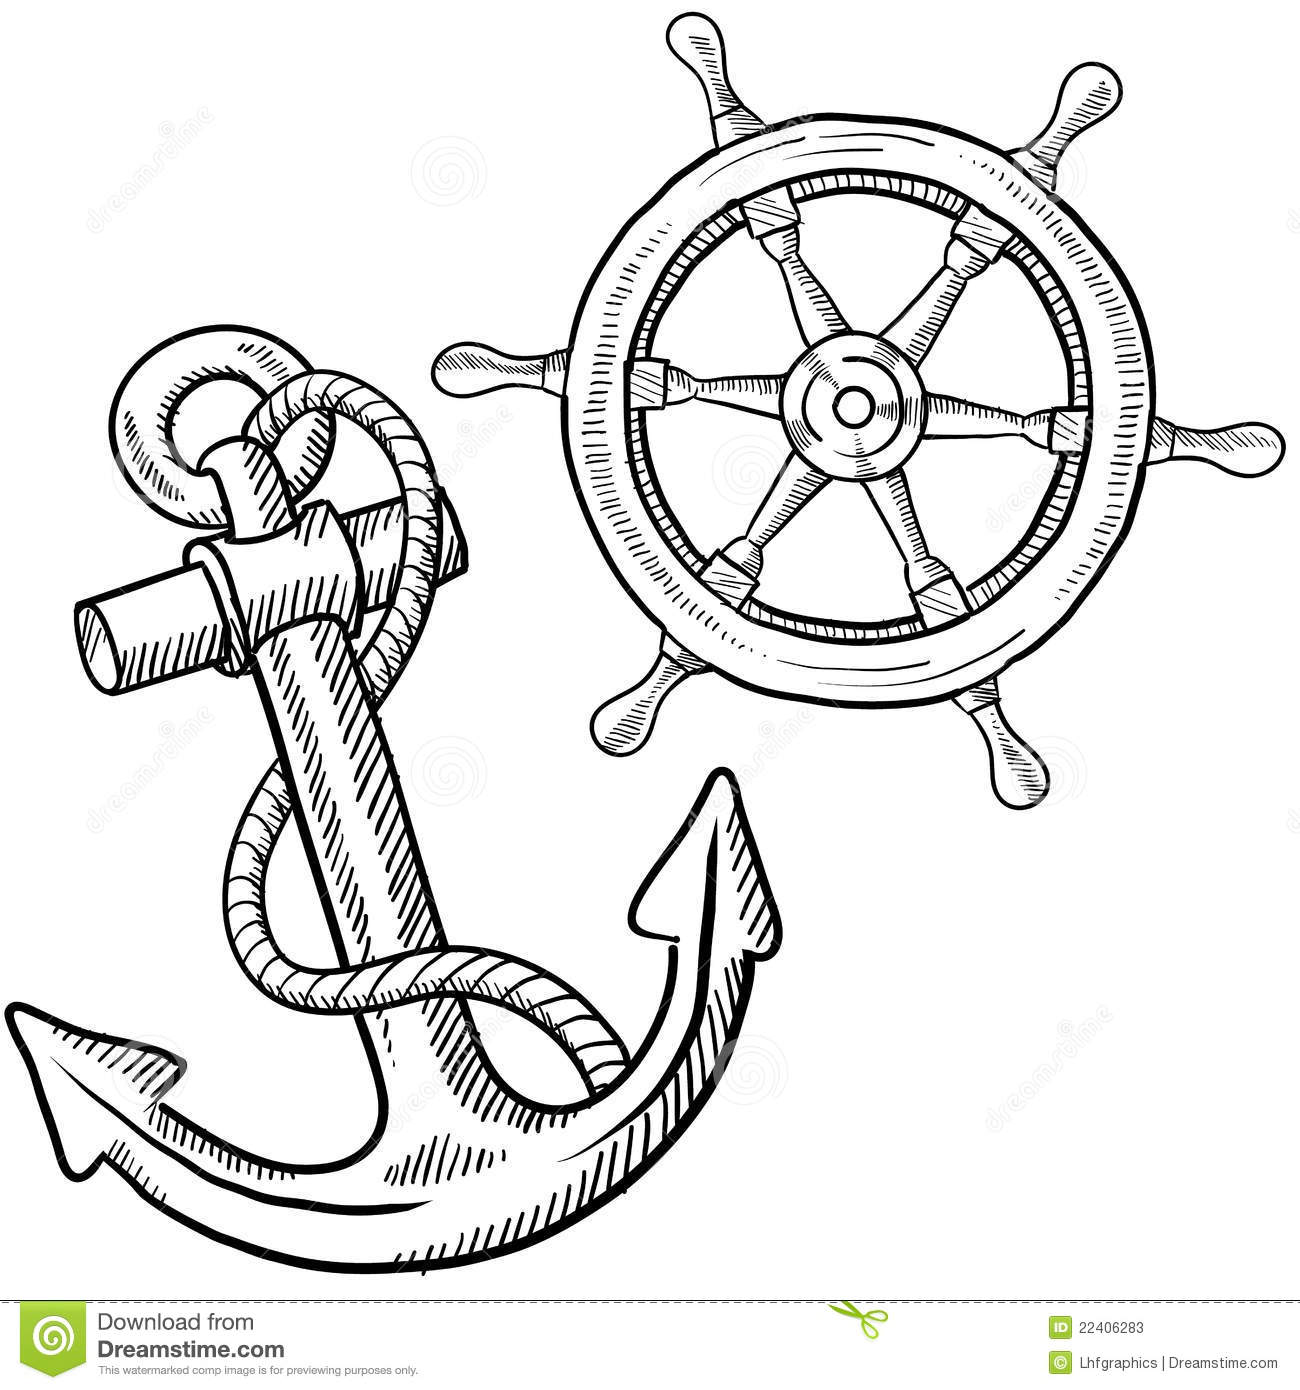 Drawing: Ships Wheel And Anchor Drawing Stock Photos